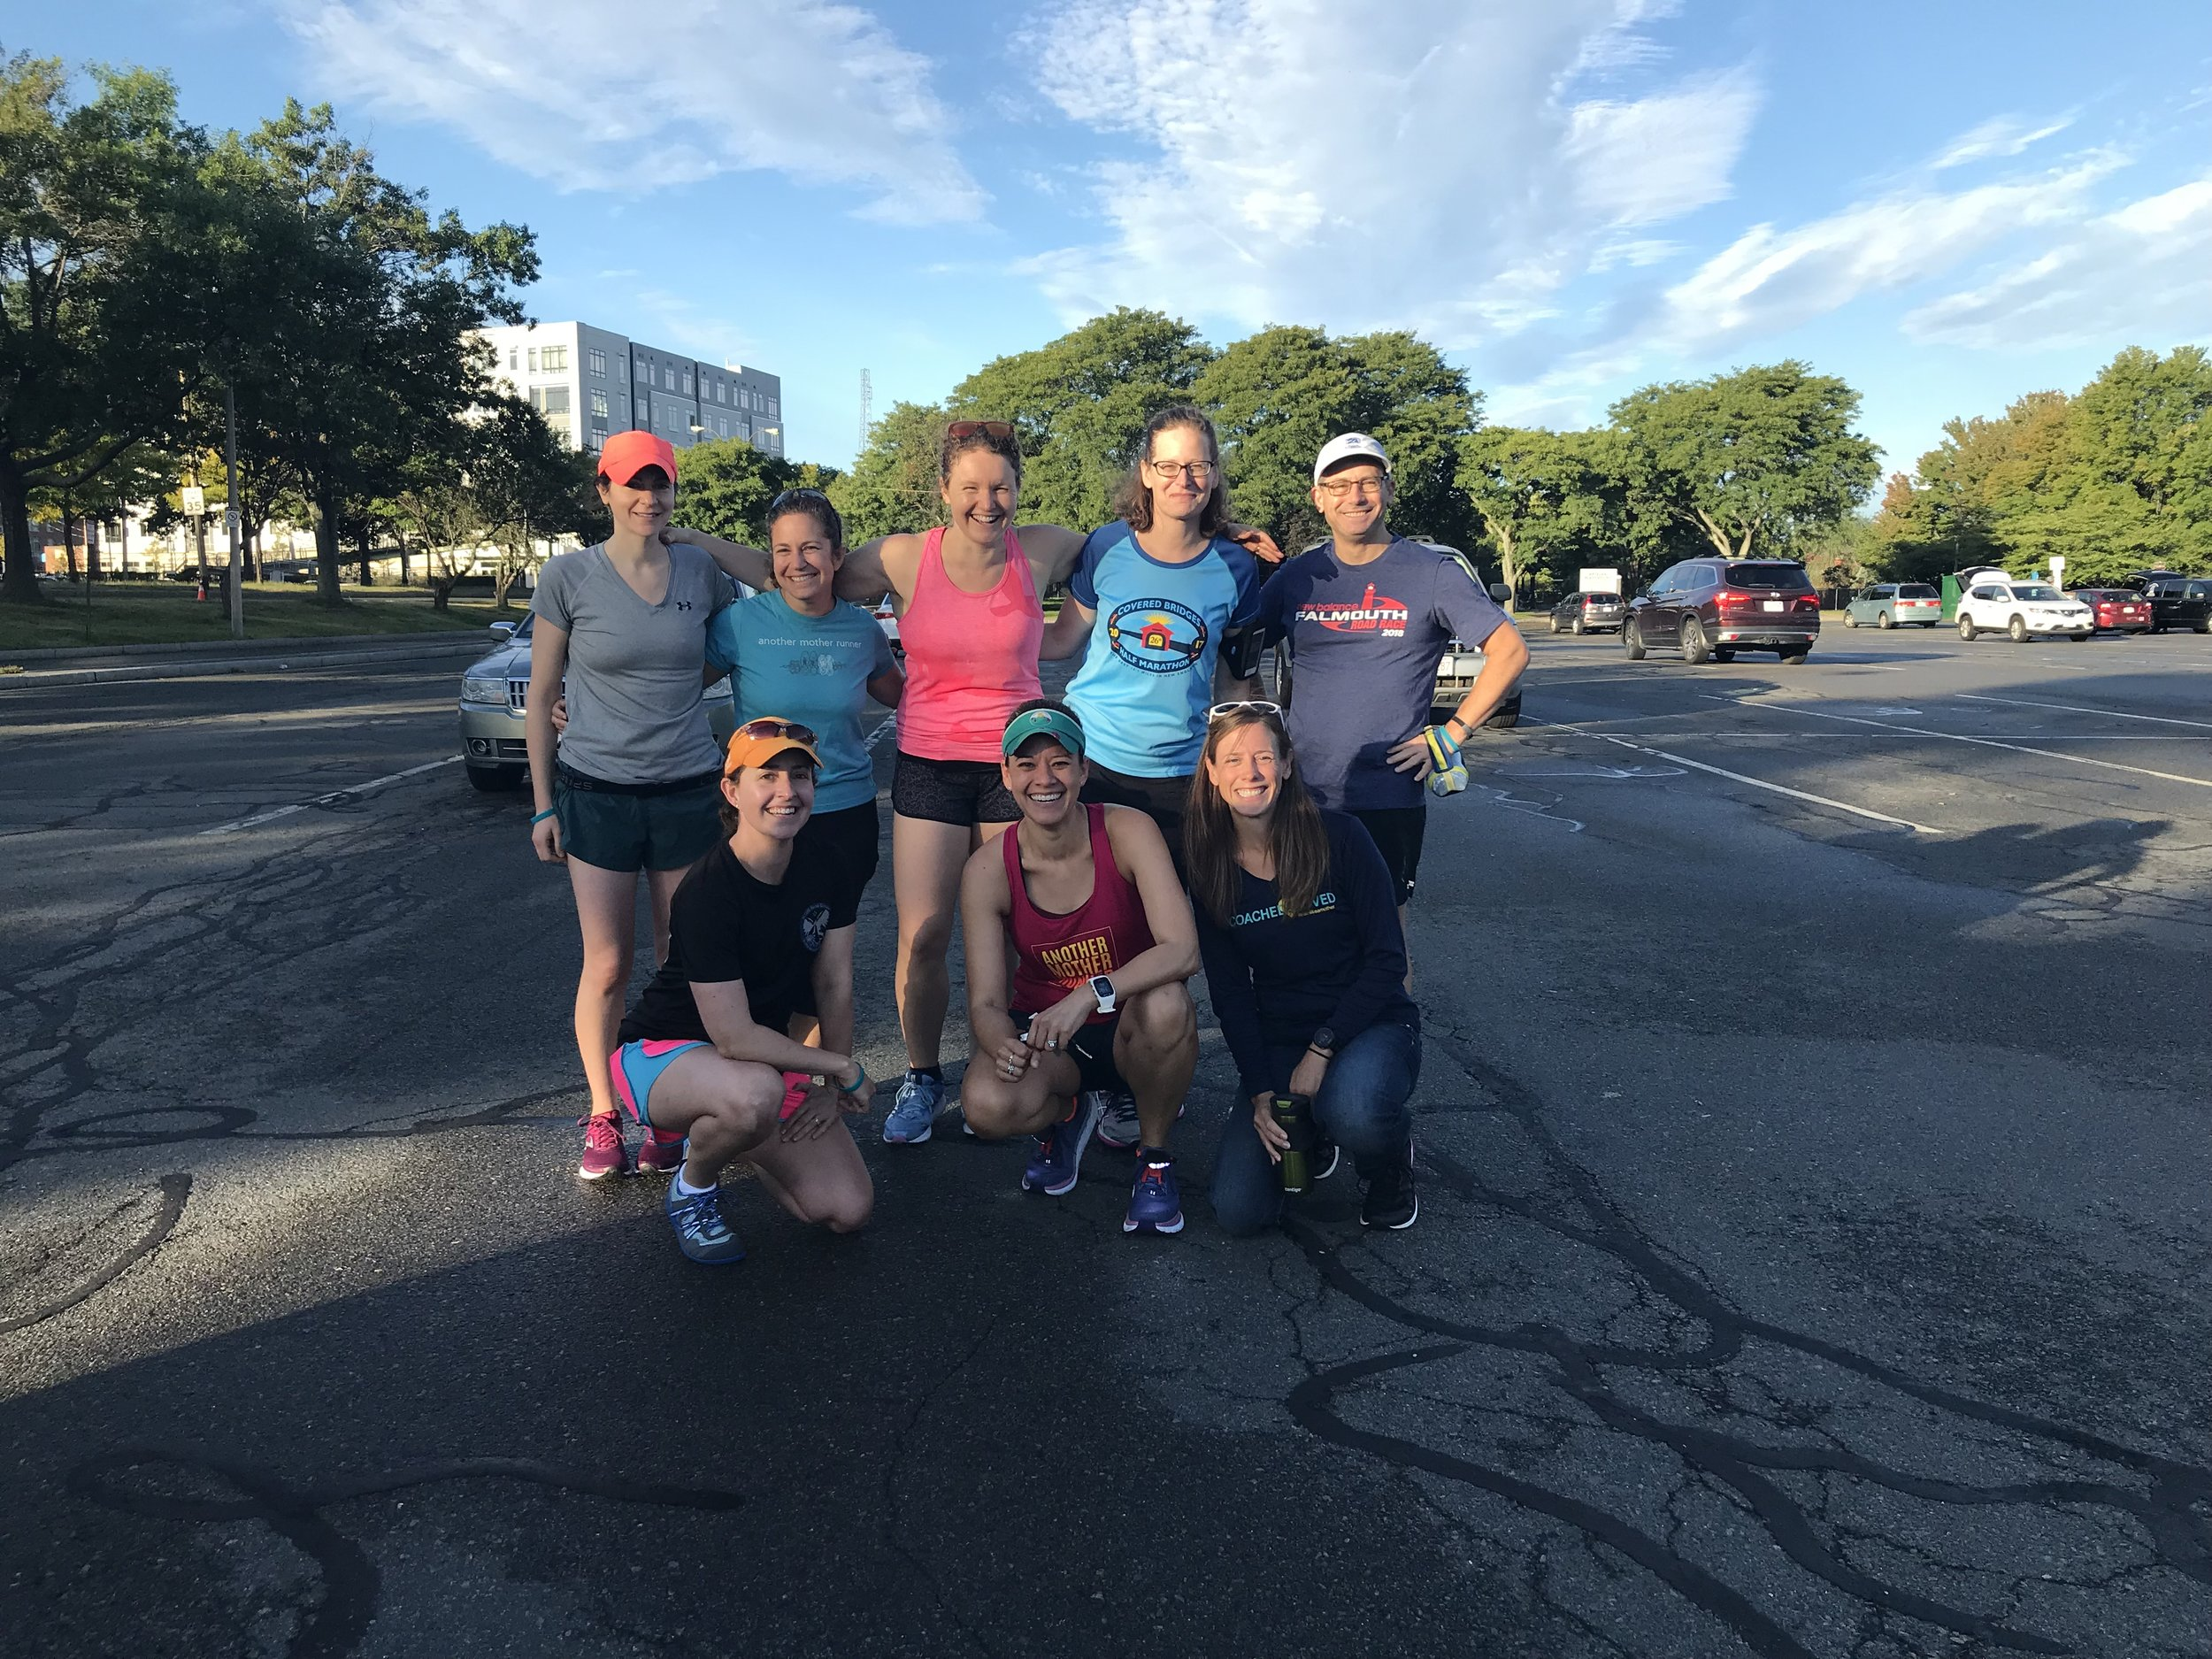 The Motherlode of Miles gang gathers on the Charles! Mother runners from left to right: Debbie, Kerri, Robin, me, Carrie, Elizabeth, Lisa,and father runner Michael.